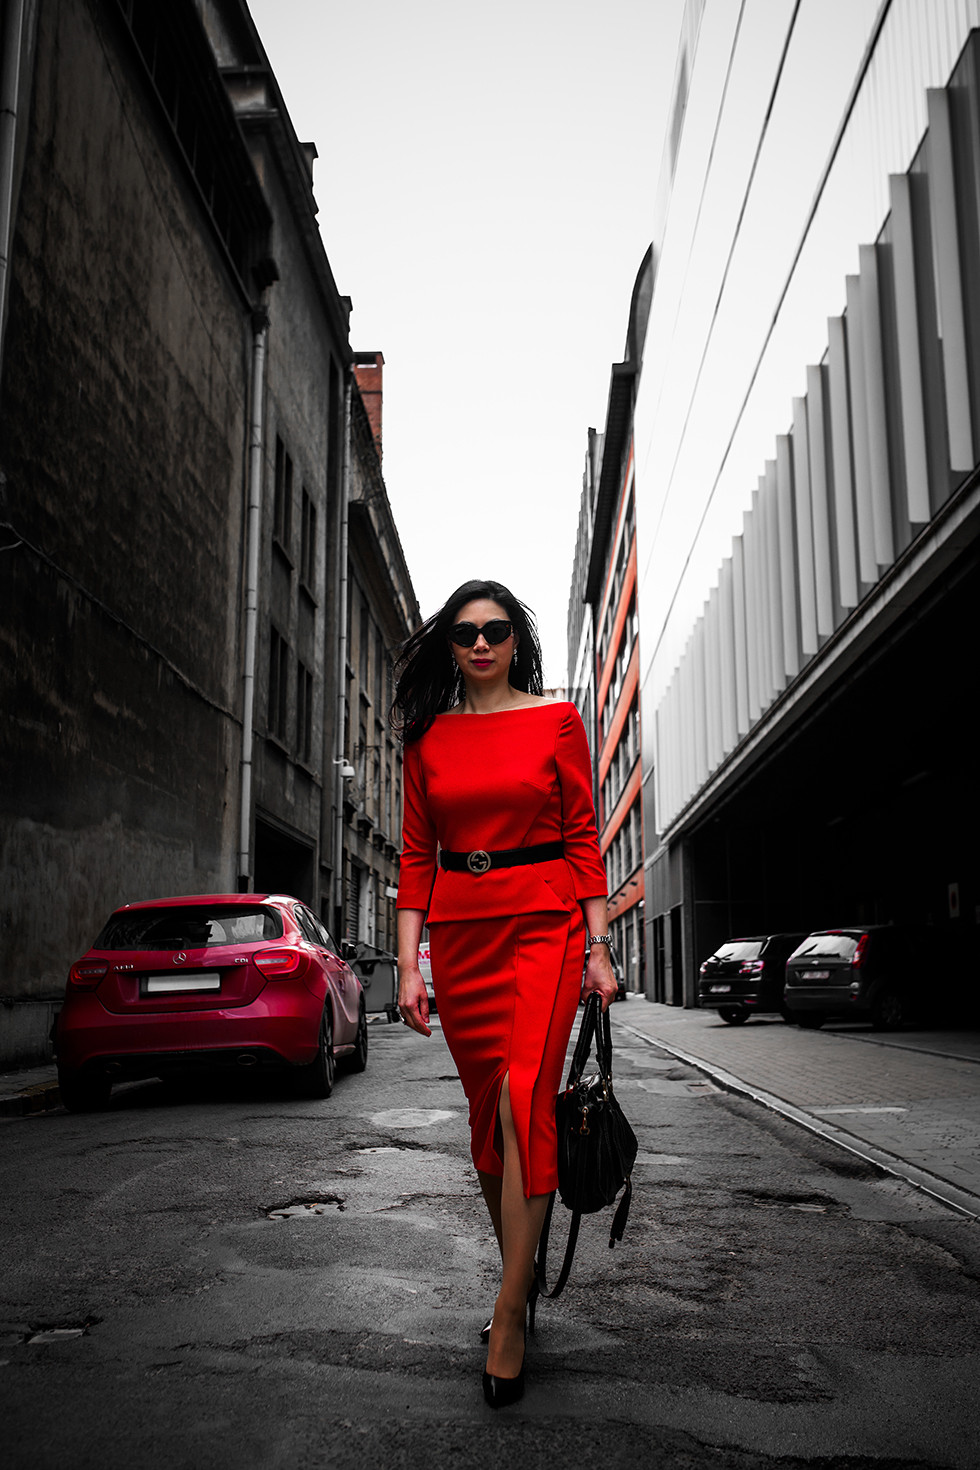 Business women in a stree wearing a red pencil dress with black leather accessoires.